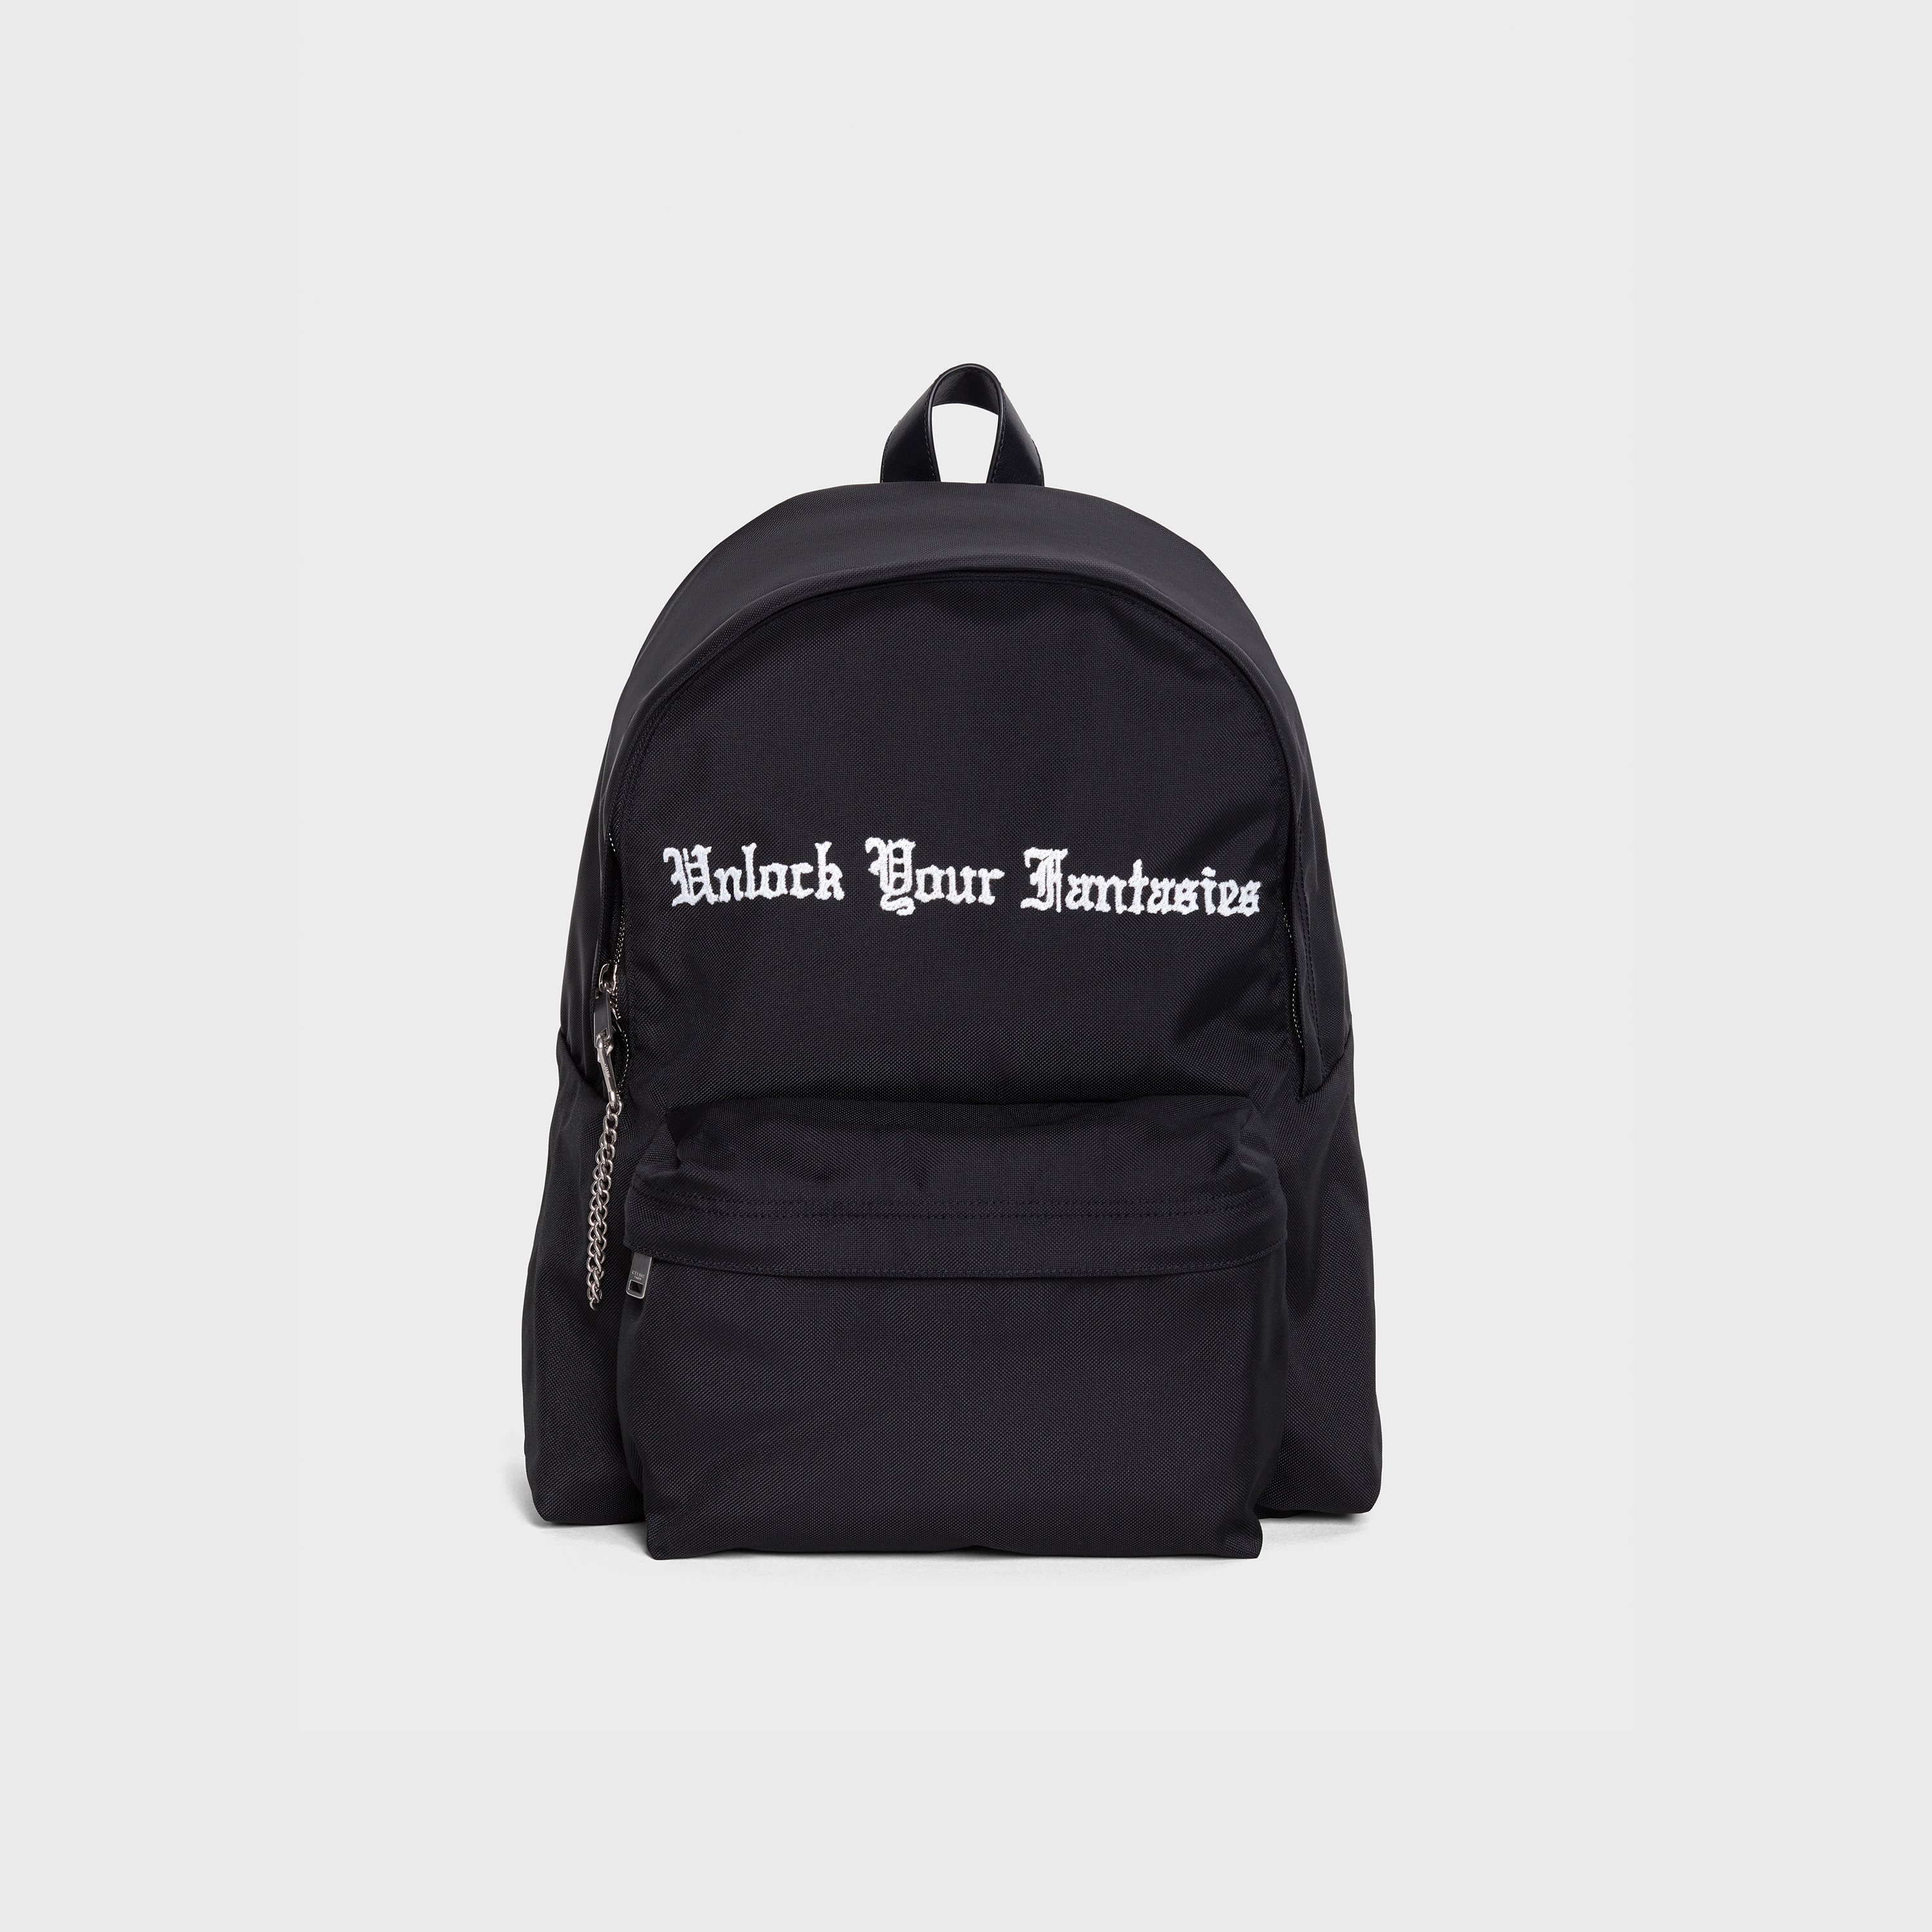 "Medium Backpack in Cody defranco ""Unlock your fantaisies"" embroidered nylon 